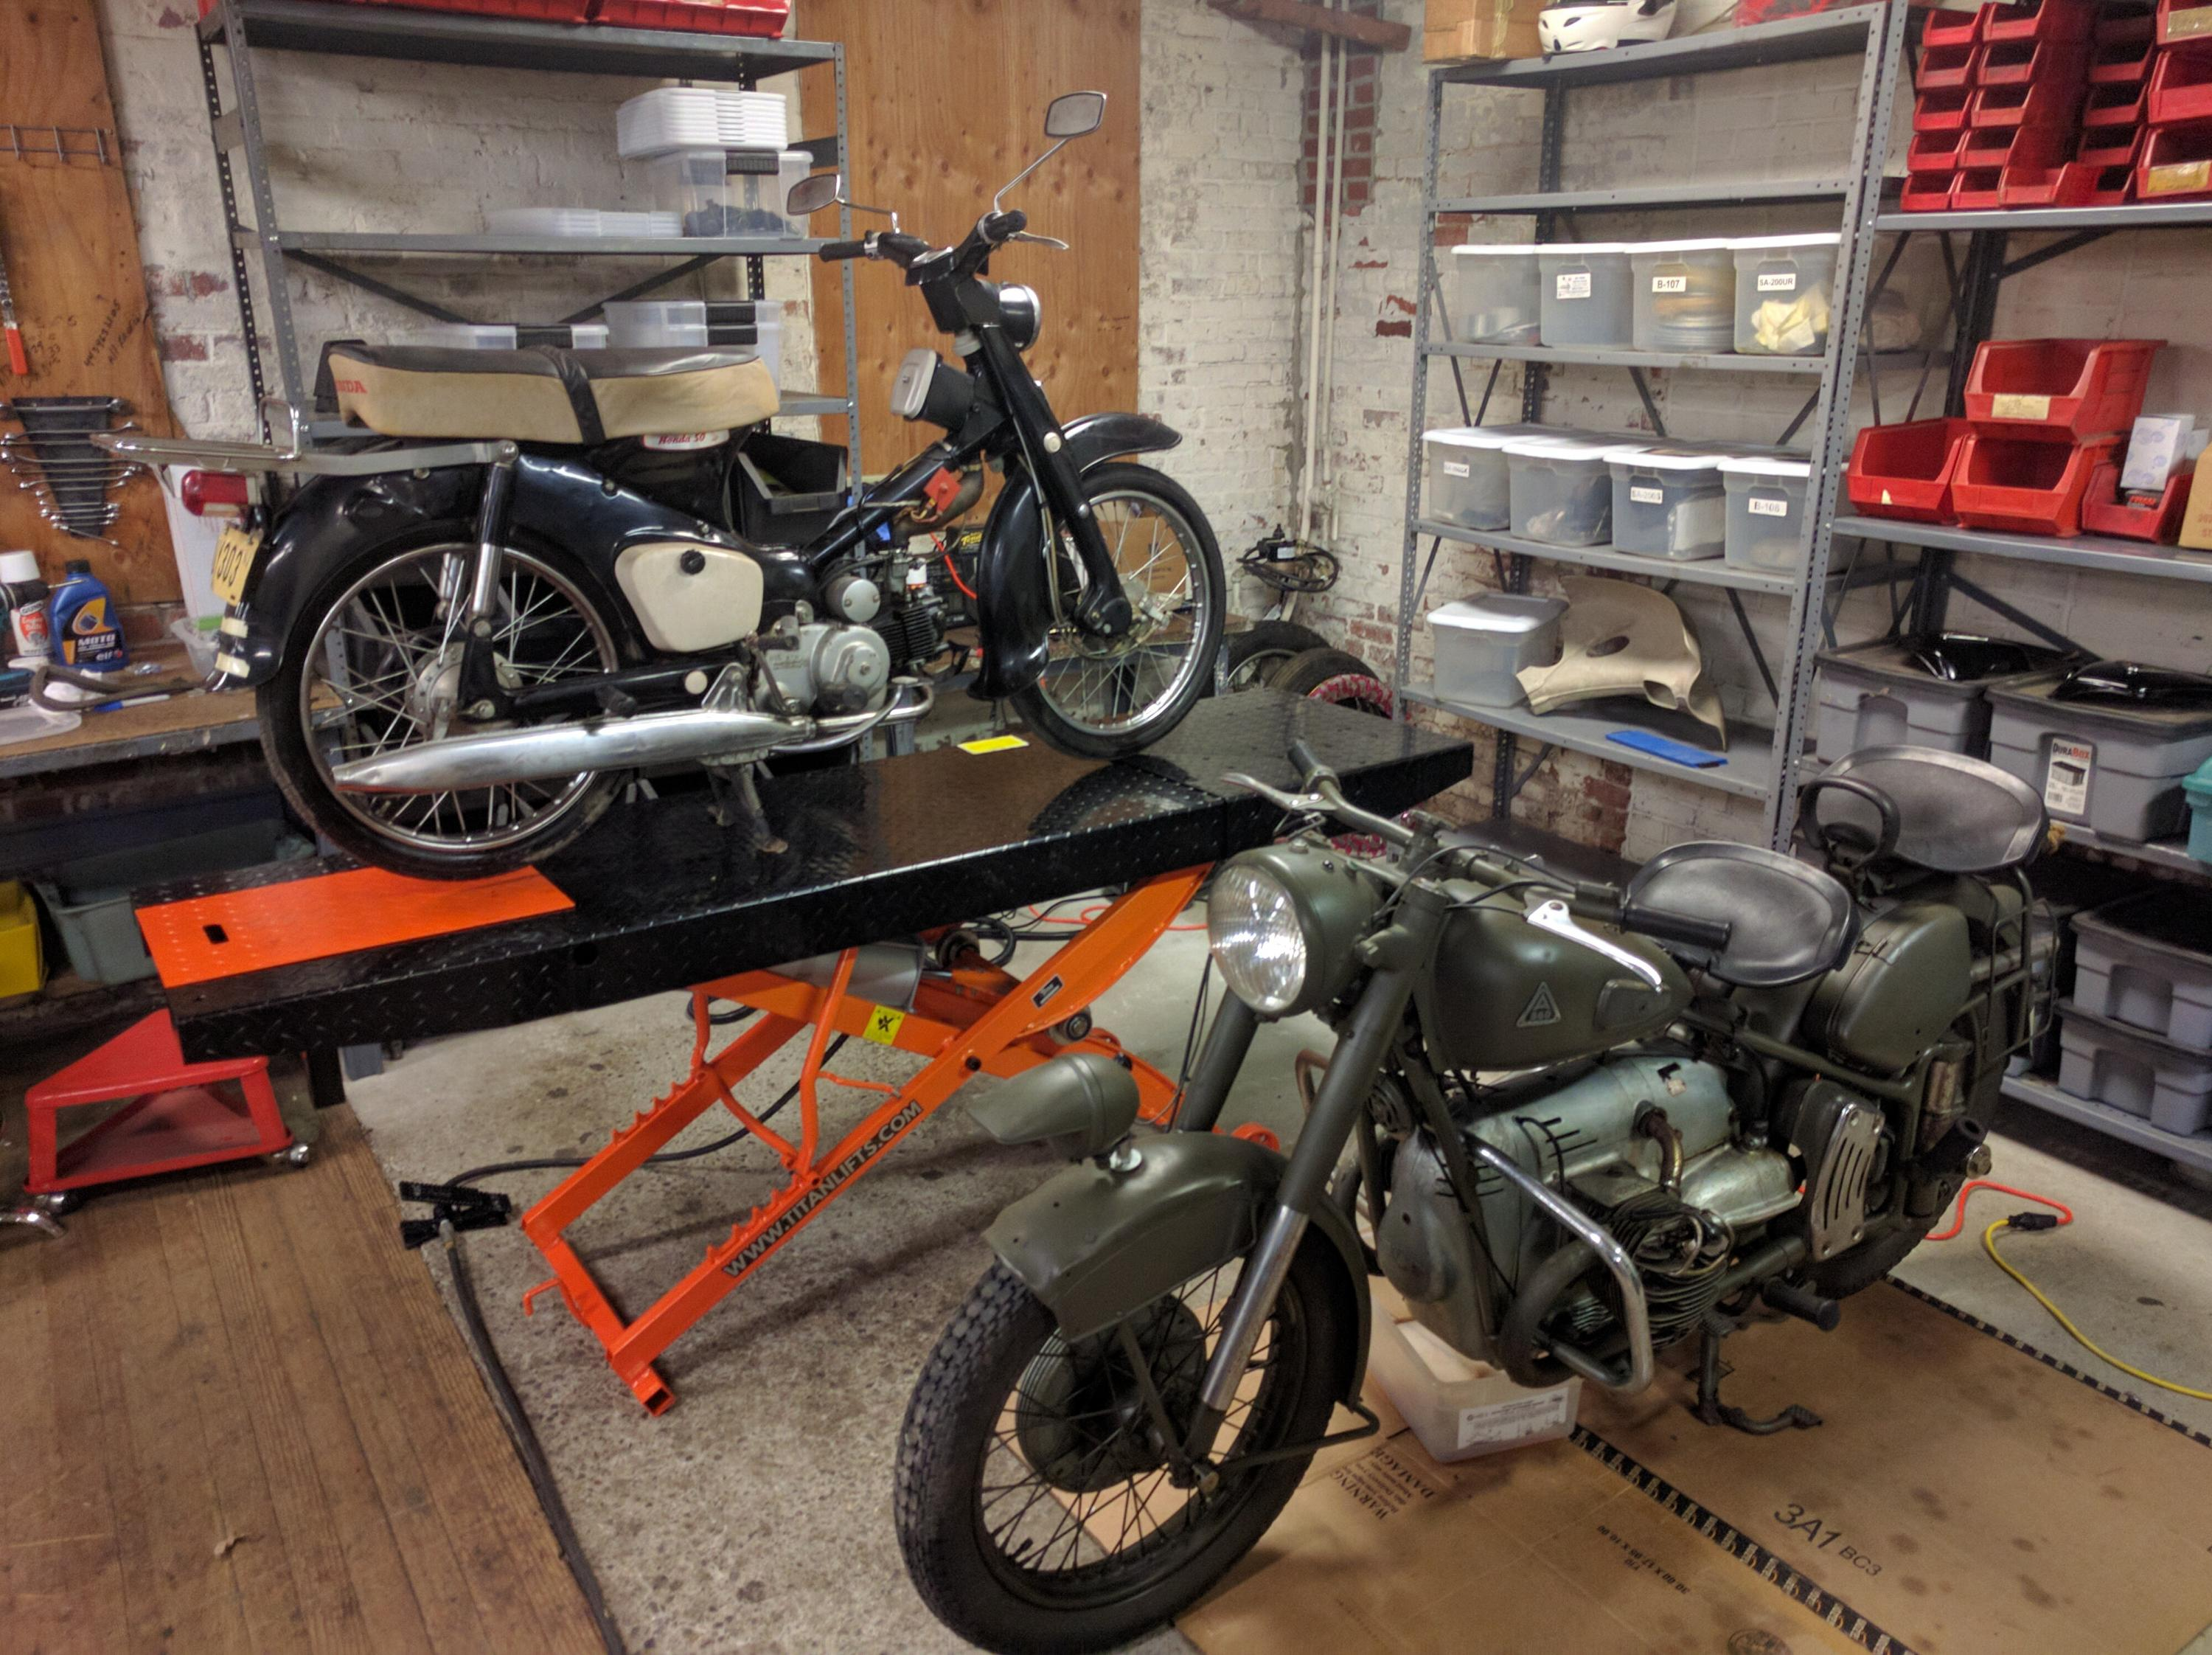 What was your first motorcycle?-2016-06-06-16-38-51.jpg